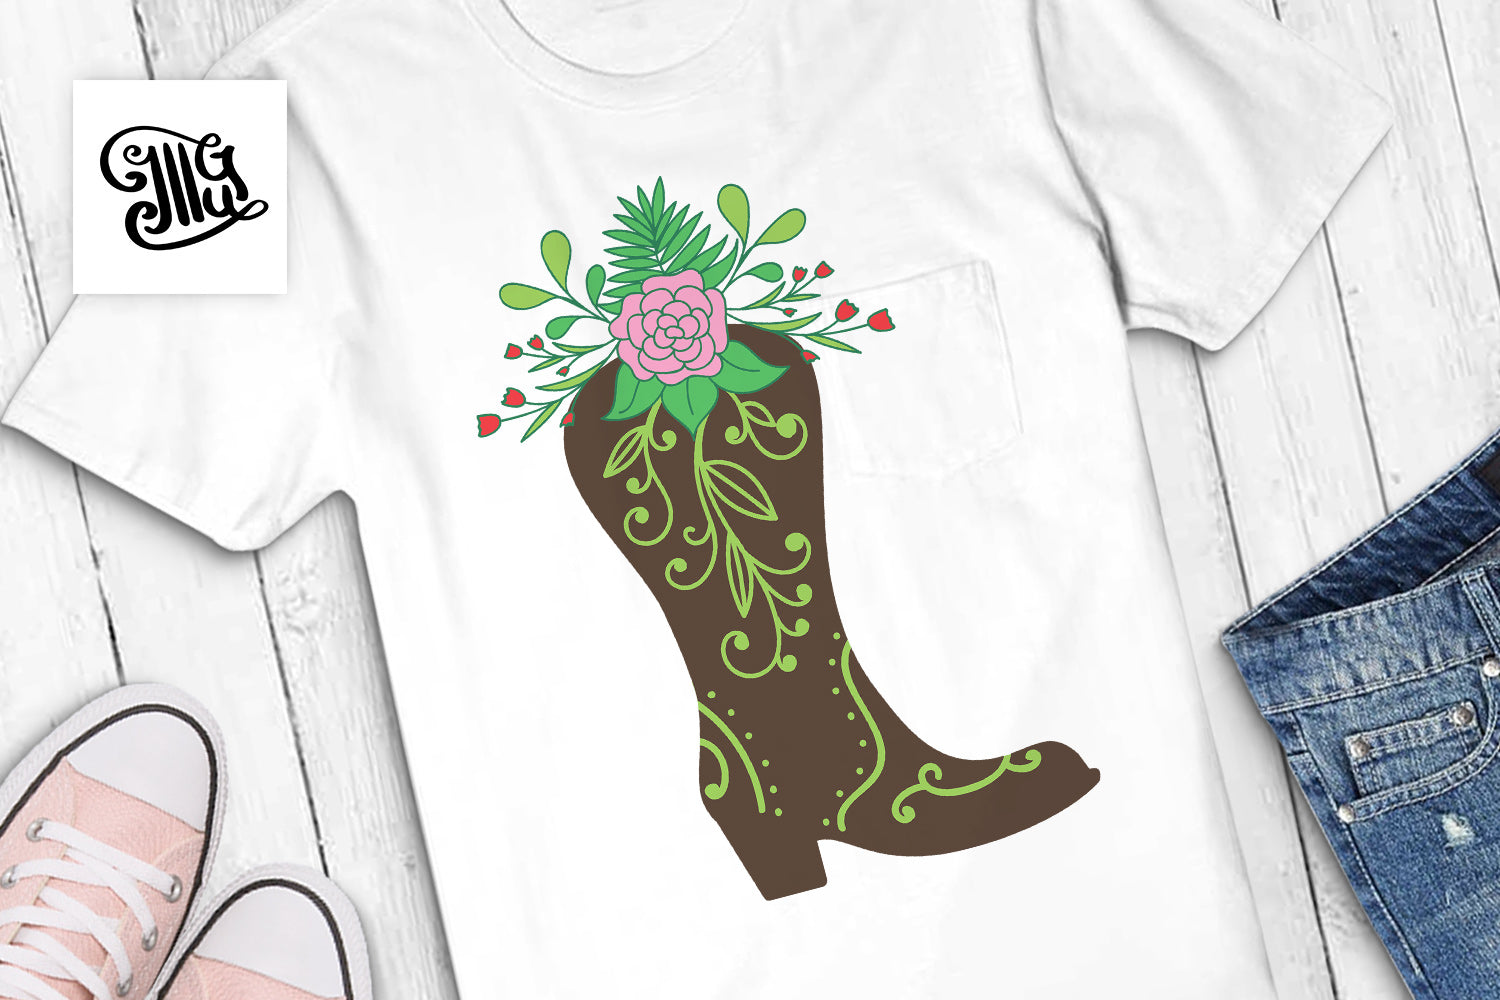 Boots with flowers SVG | Floral boots svg | Cowgirl floral boots svg | Boots and bling svg | Southern svg | Southern girl svg, Southern sayings svg svg | Southern sayings svg-by Illustrator Guru